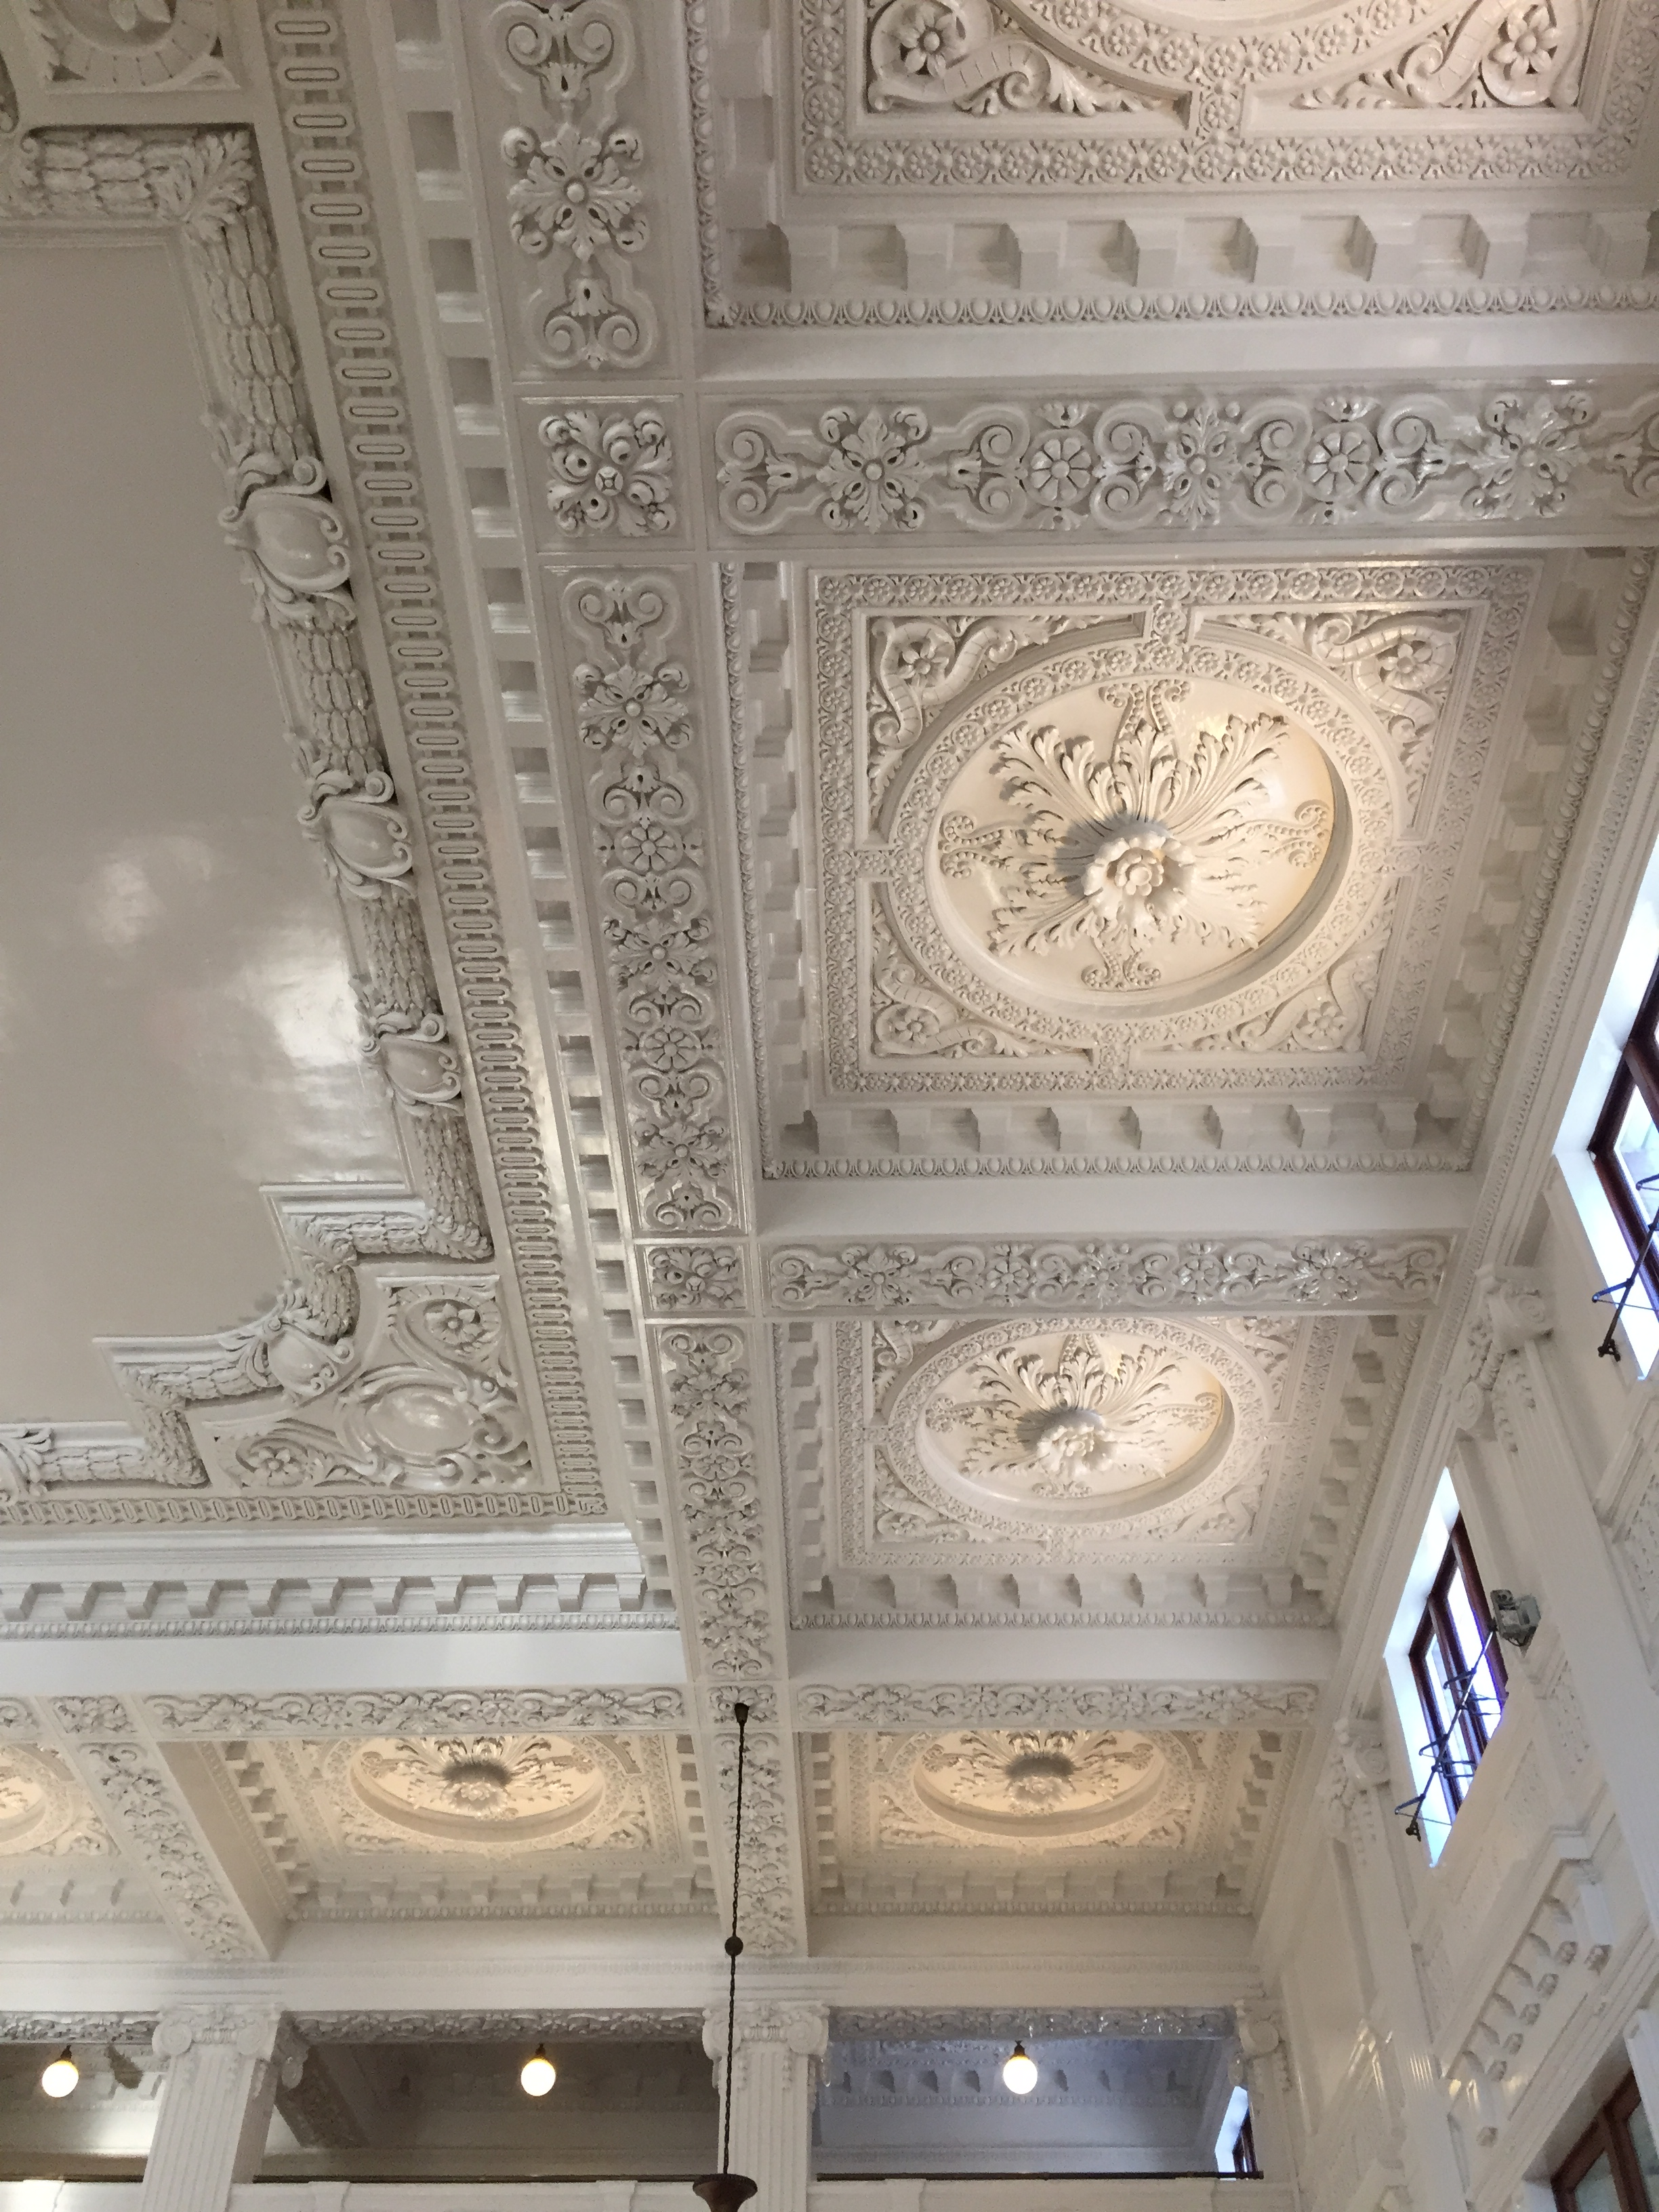 The ceiling is amazing!